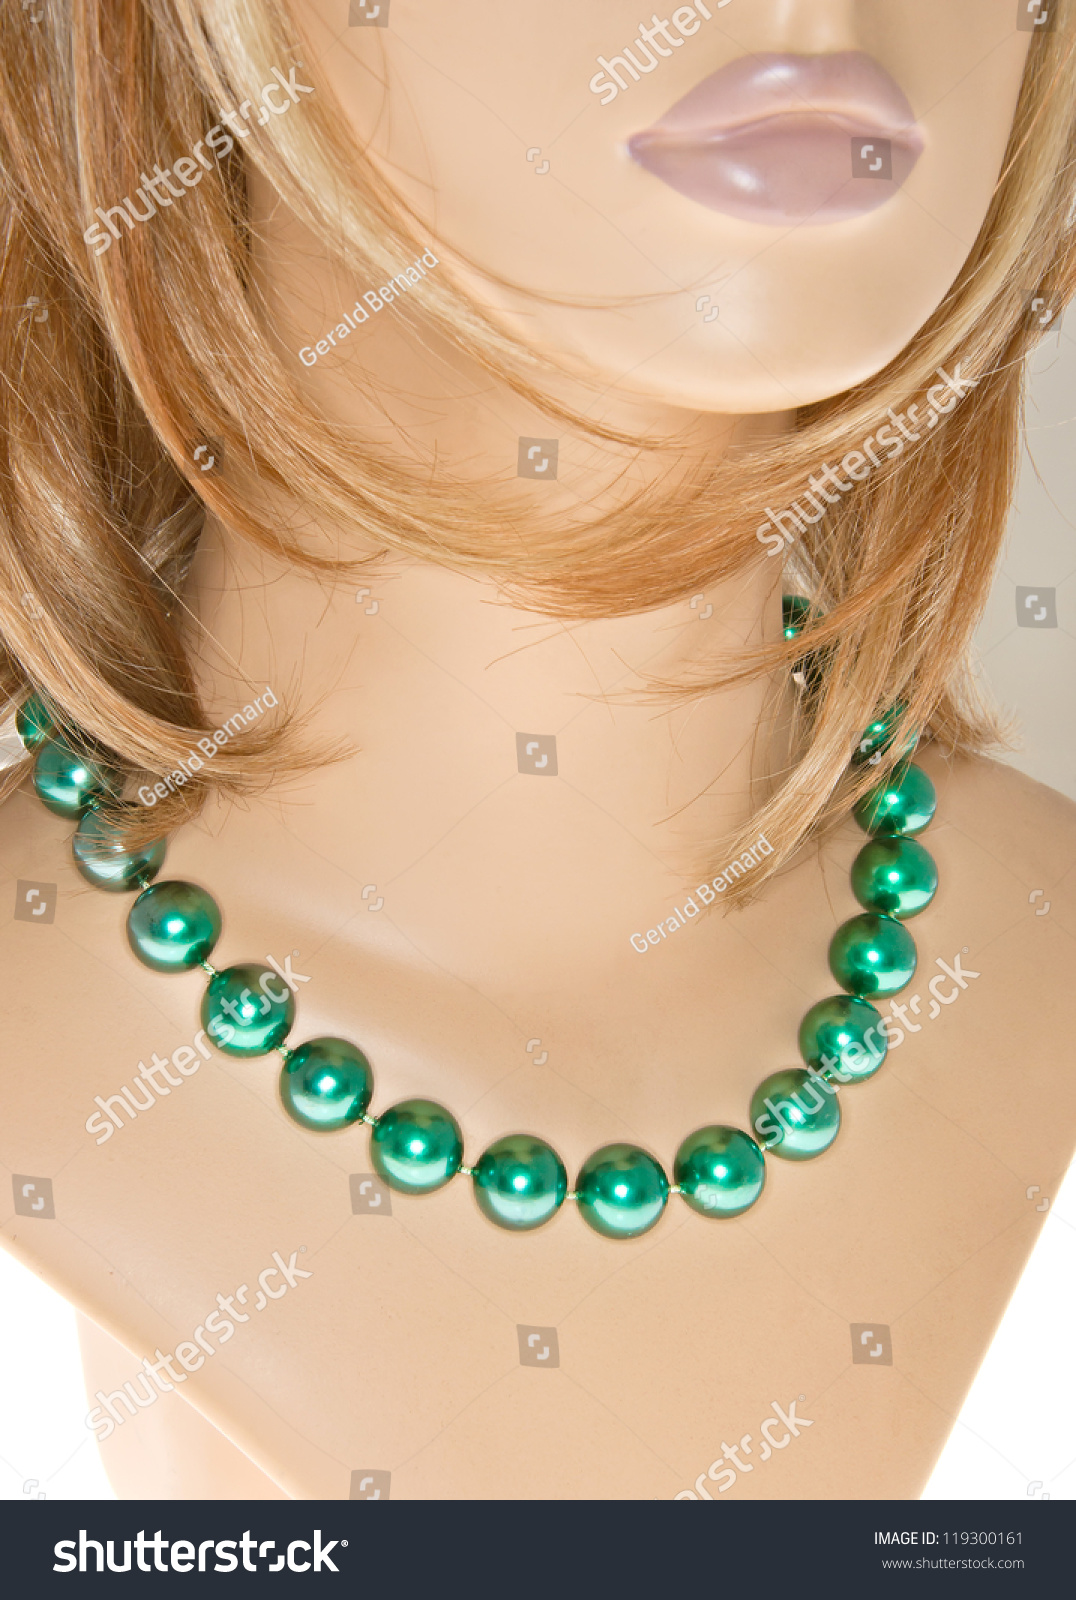 store showcas of necklace ay jewelry counter stock photo